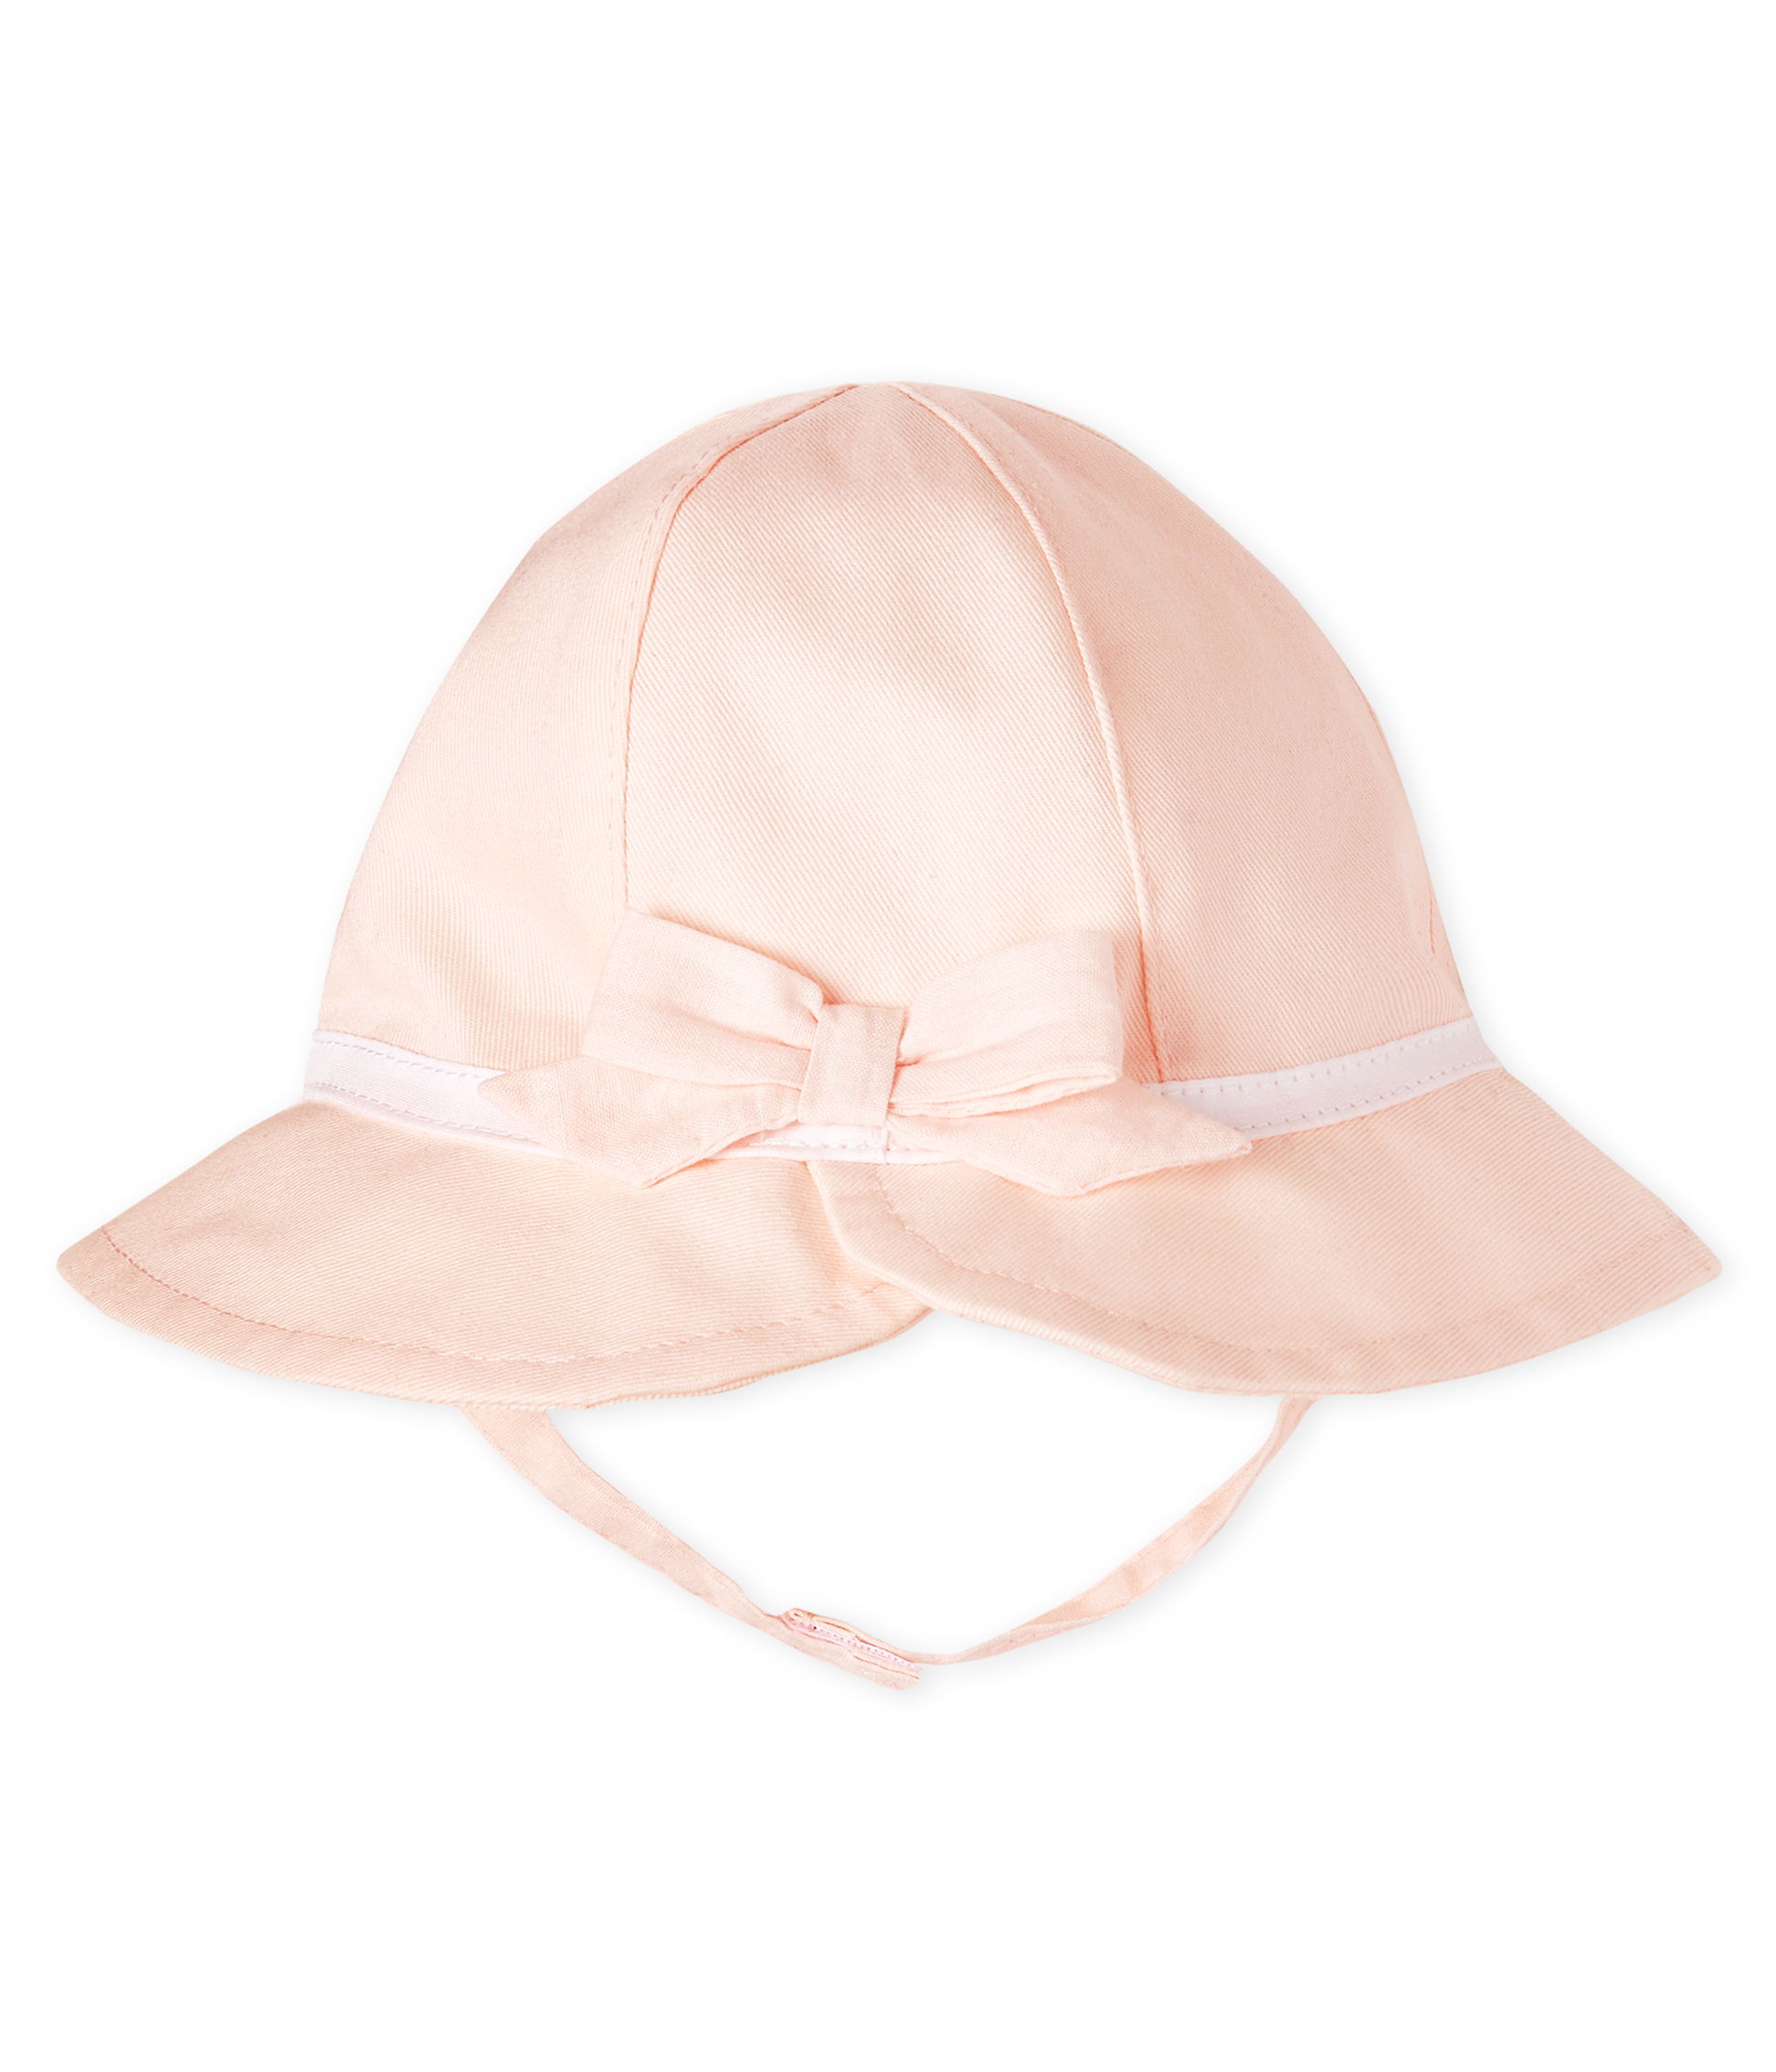 Twill wide-brimmed hat for baby girls